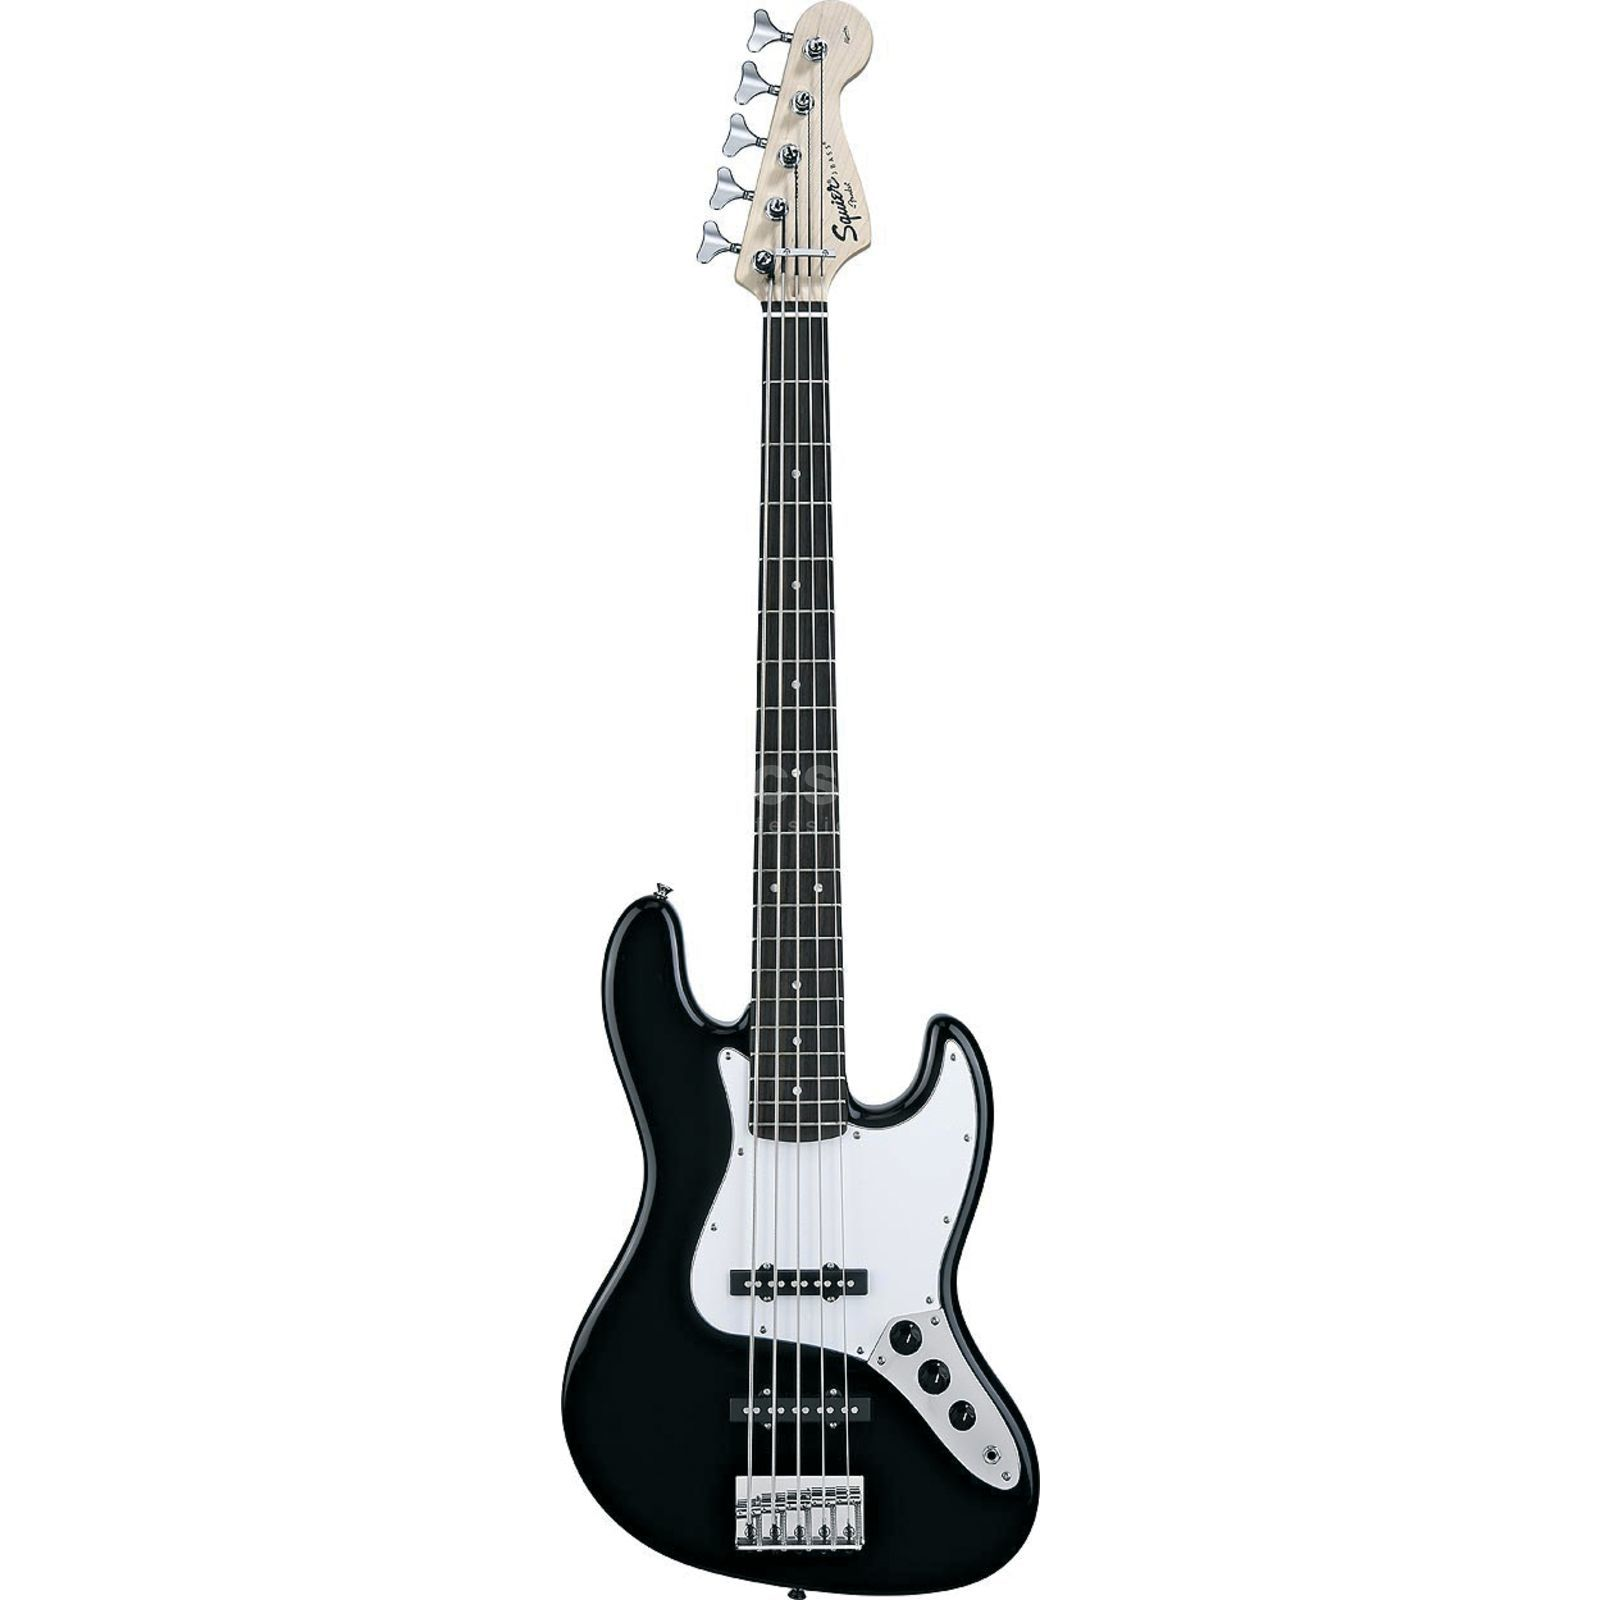 Fender Squier Affinity Series Jazz Bass V RW Black Produktbild